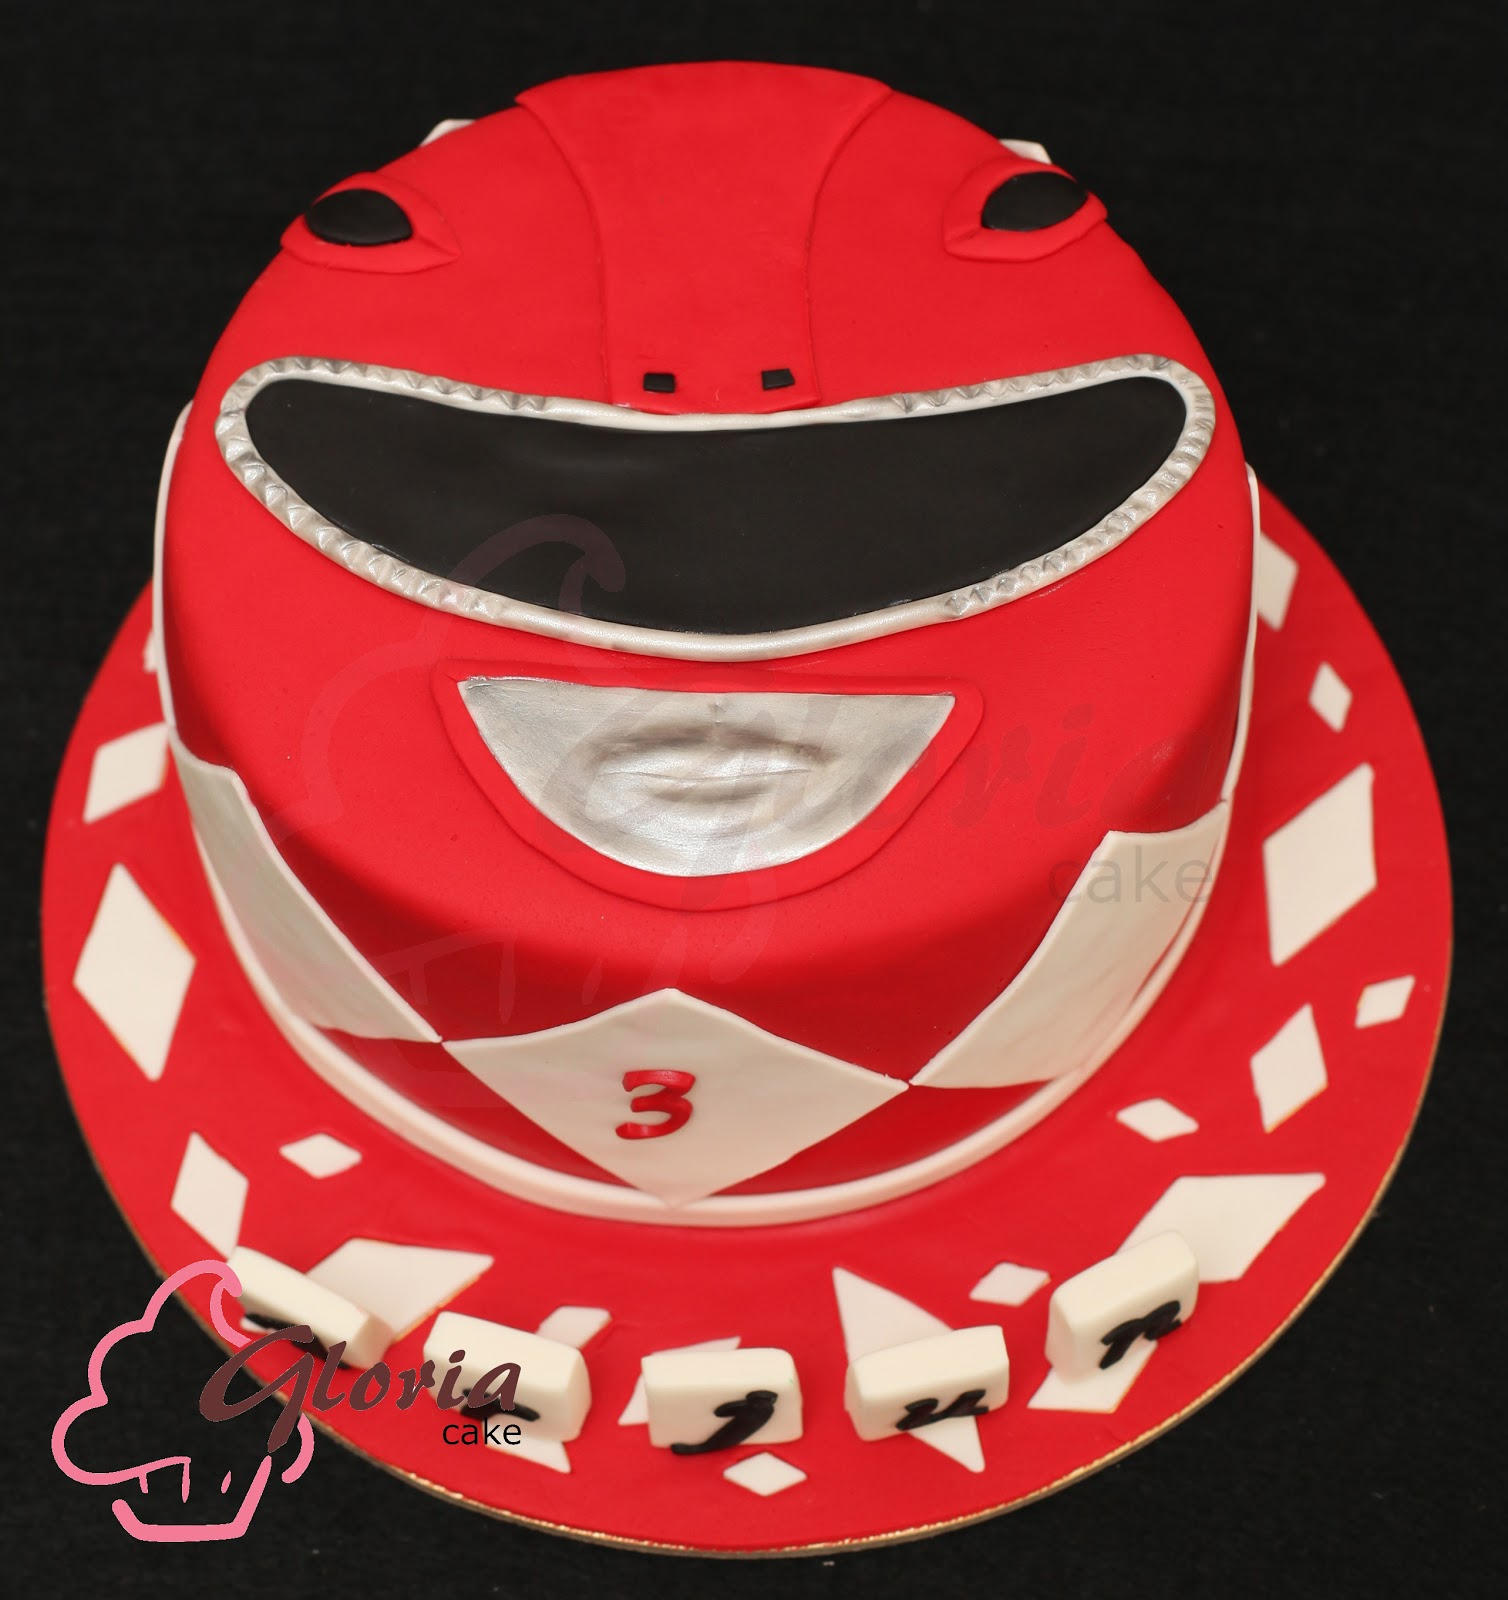 Gloria Cake Red Power Ranger